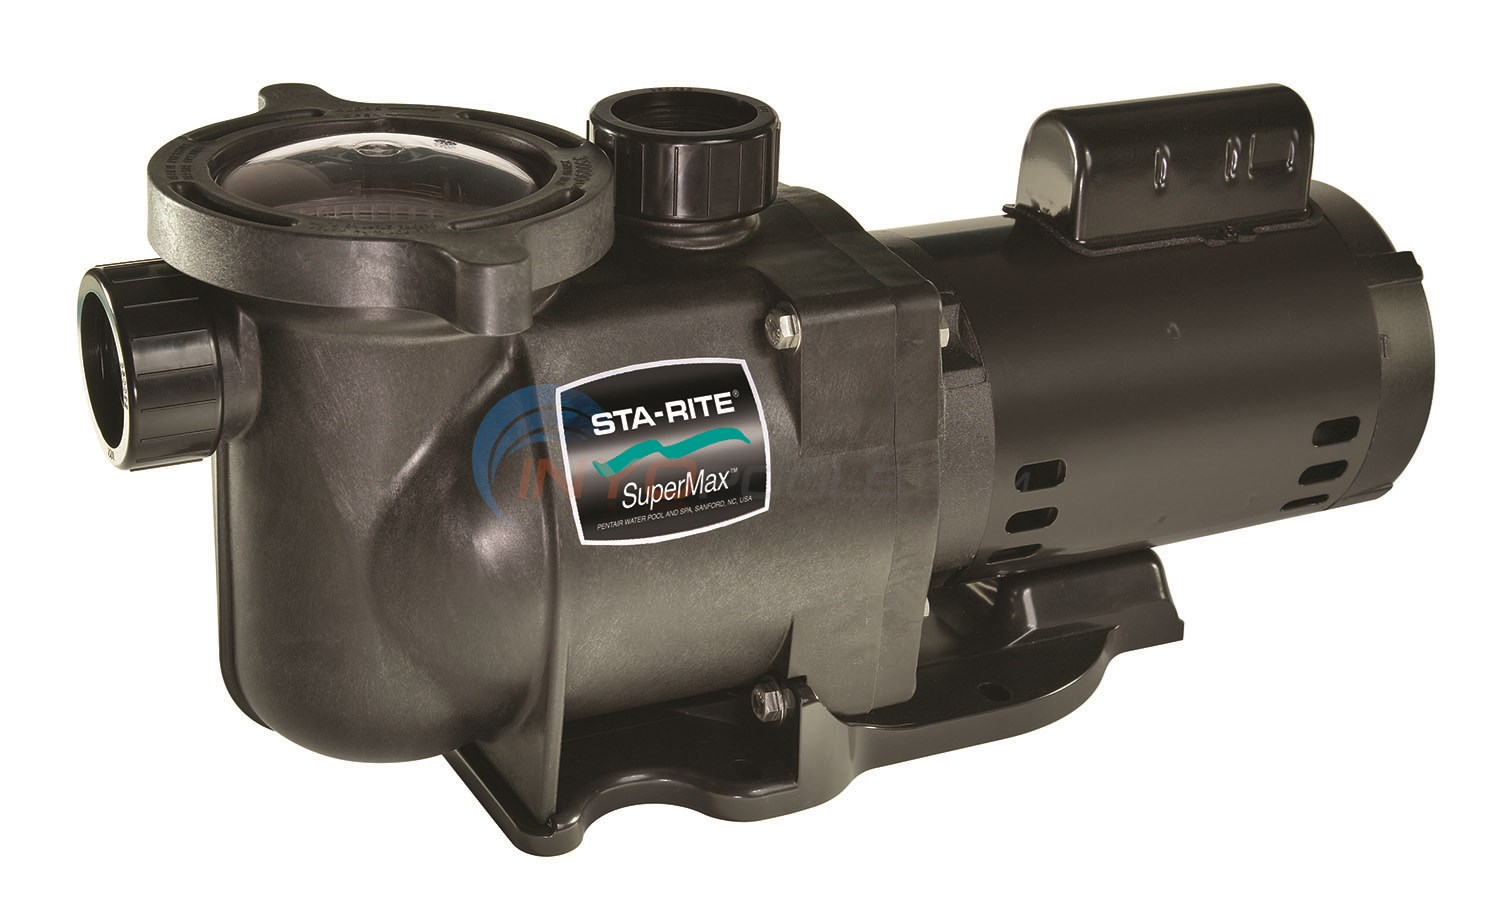 Sta Rite SuperMax?format=jpg&scale=both&anchor=middlecenter&autorotate=true&mode=pad&width=650&height=650 sta rite super max 2 hp pump phk2ra6g104l inyopools com supermax lg-1440 wiring diagram at readyjetset.co